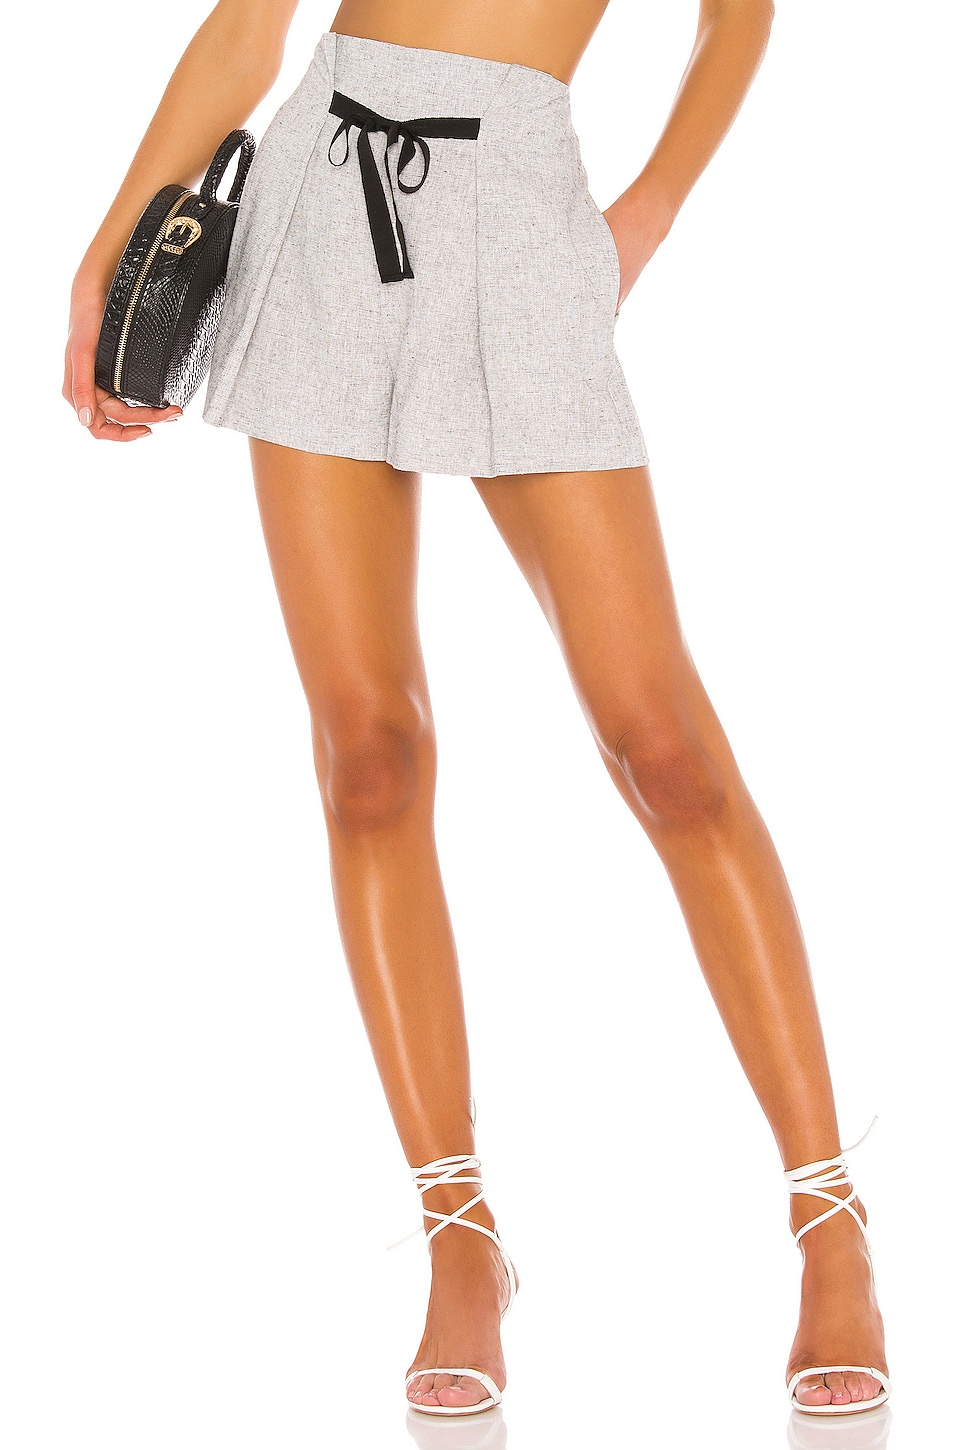 L'Academie The Bilo Short in Black & White